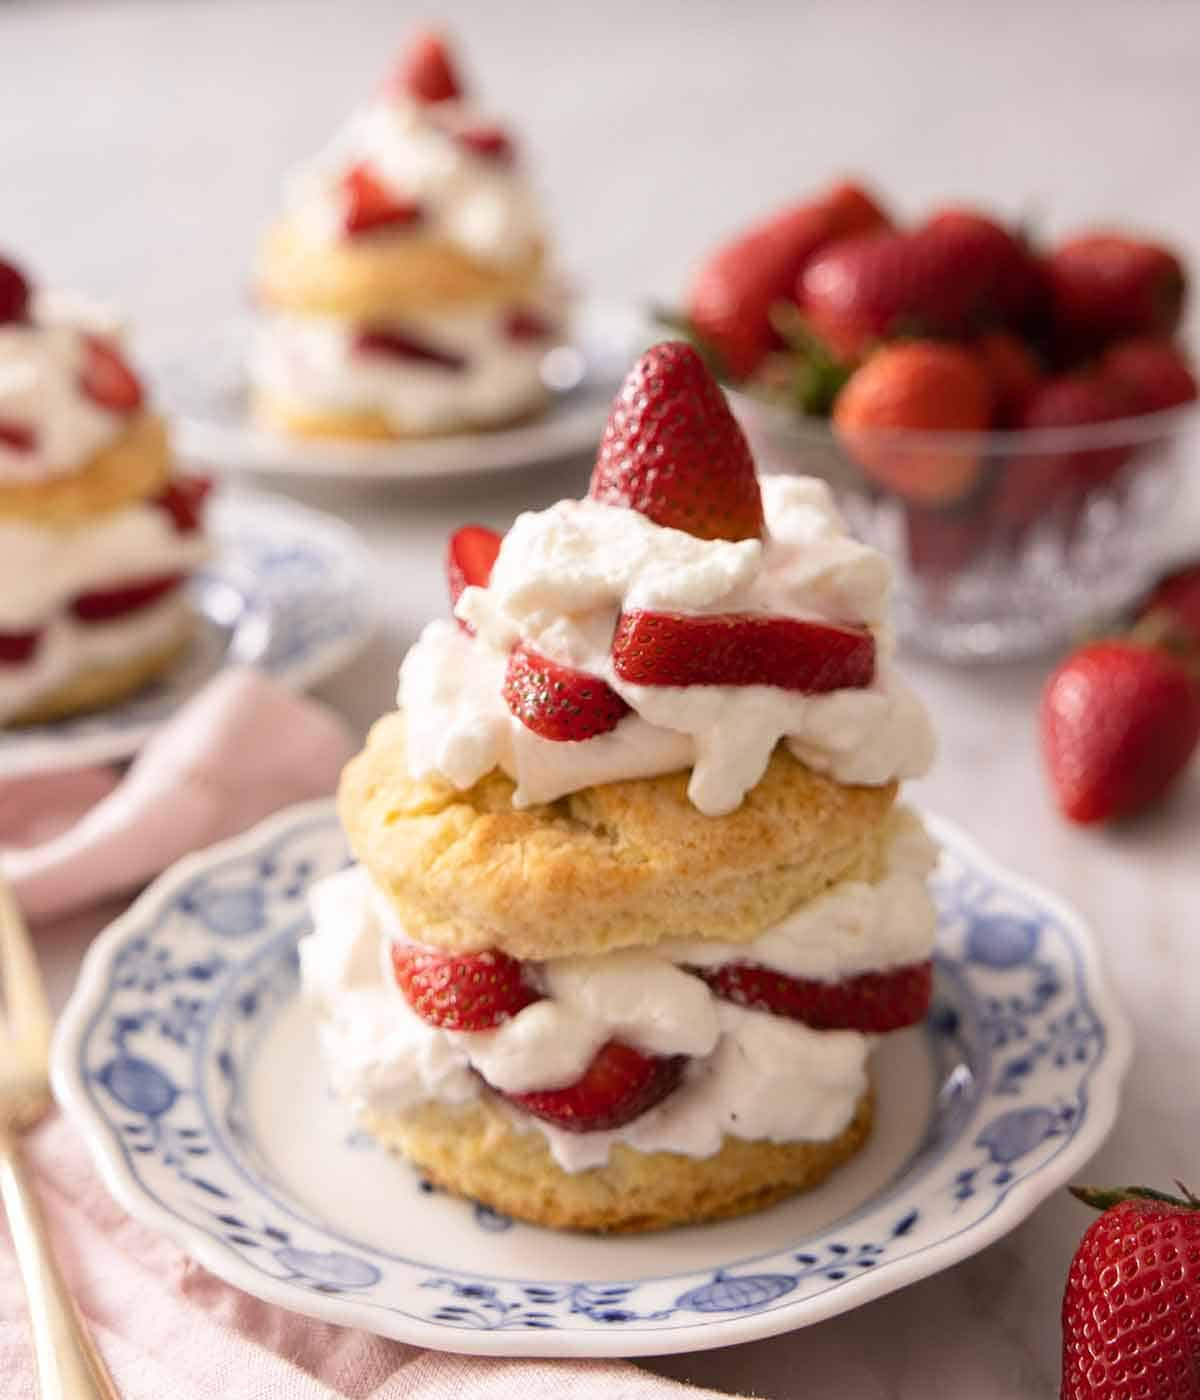 Three plates of strawberry shortcakes beside a bowl of strawberries with one plate in focus.